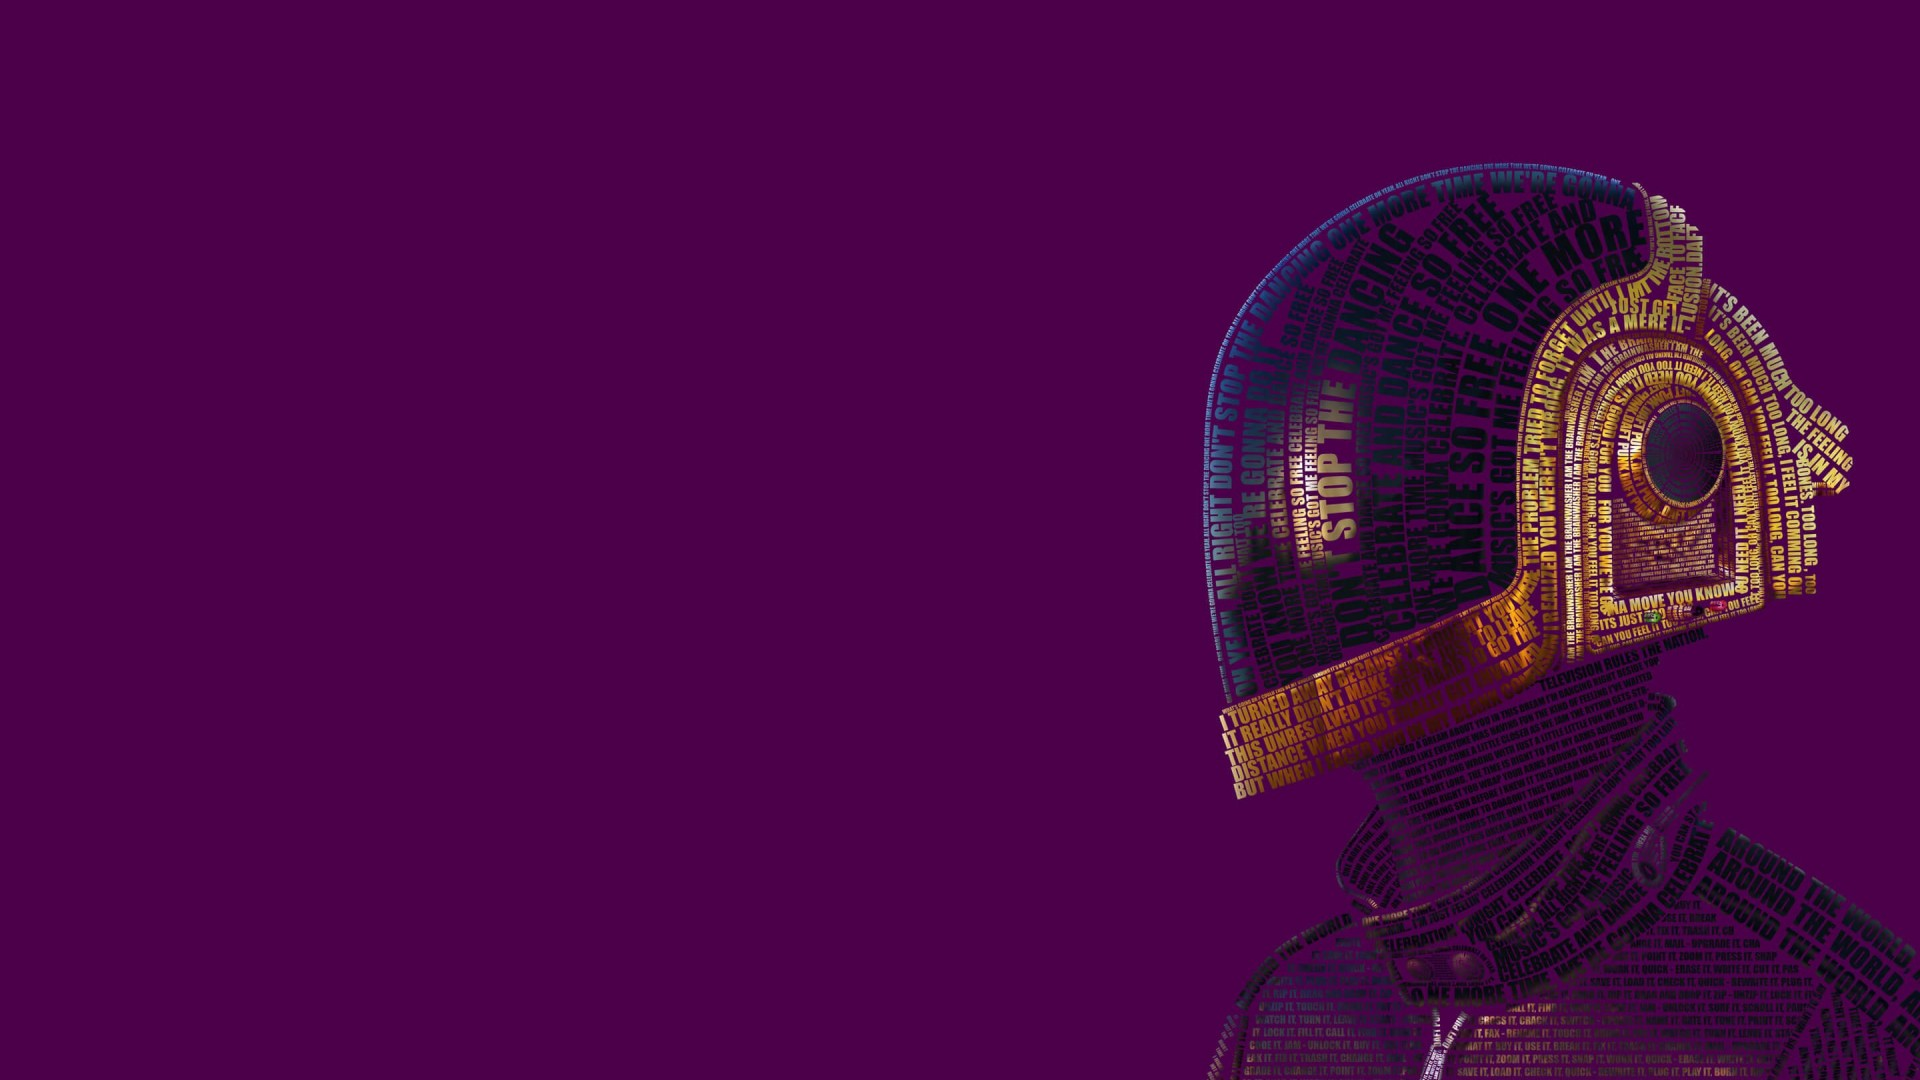 Daft Punk Typographic Portrait Wallpaper for Desktop 1920x1080